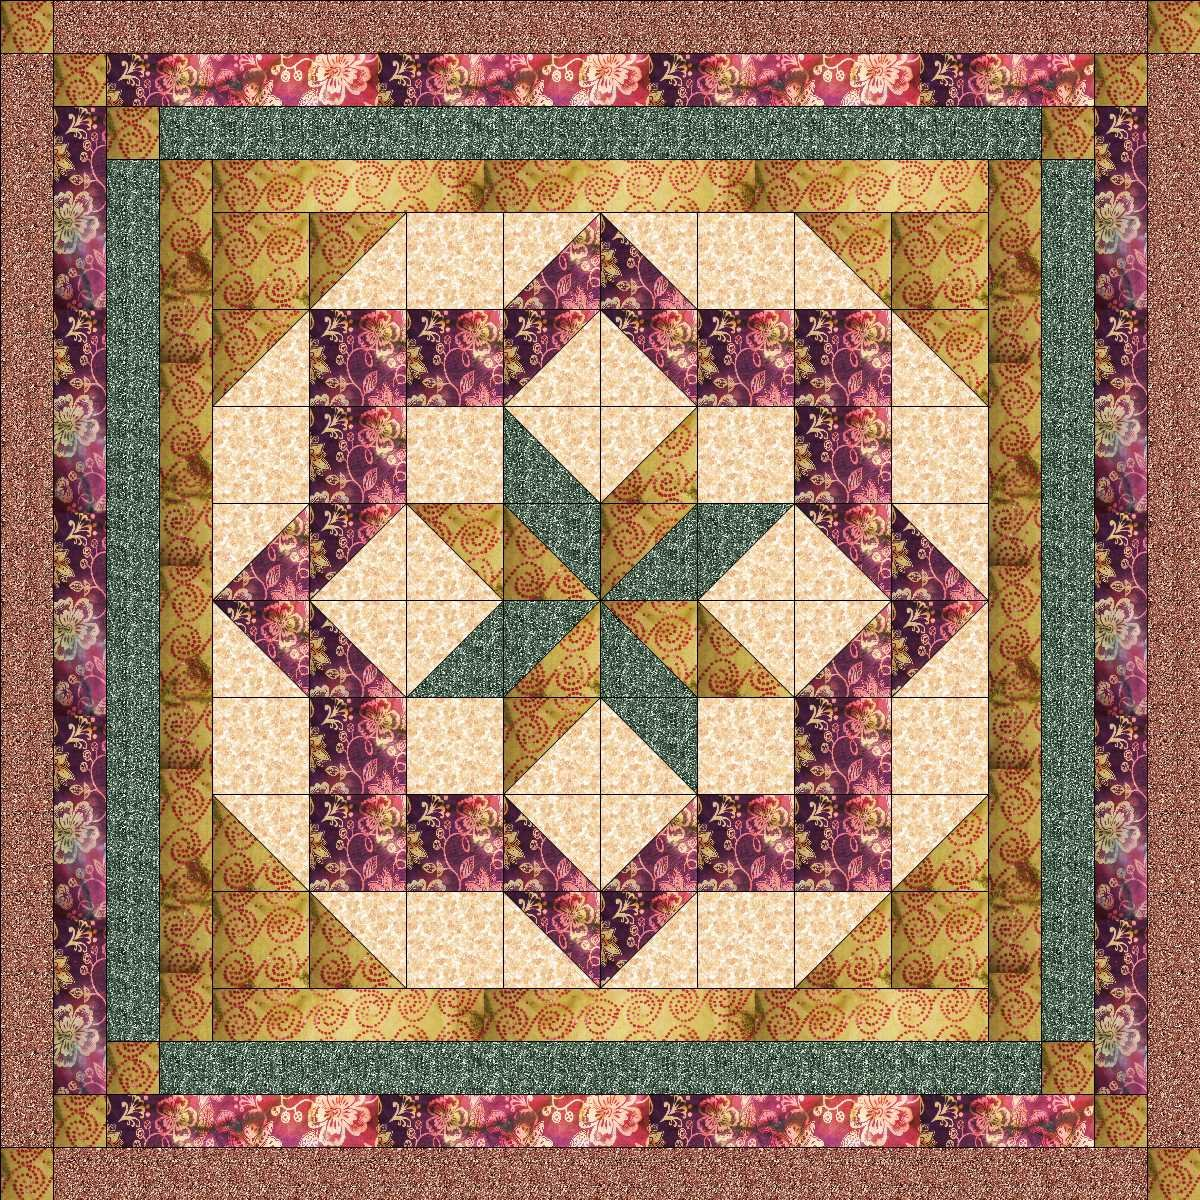 Easy Quilt Kit Constellation Christmas Batiks and Textureds/EXPEDITED SHIPPING